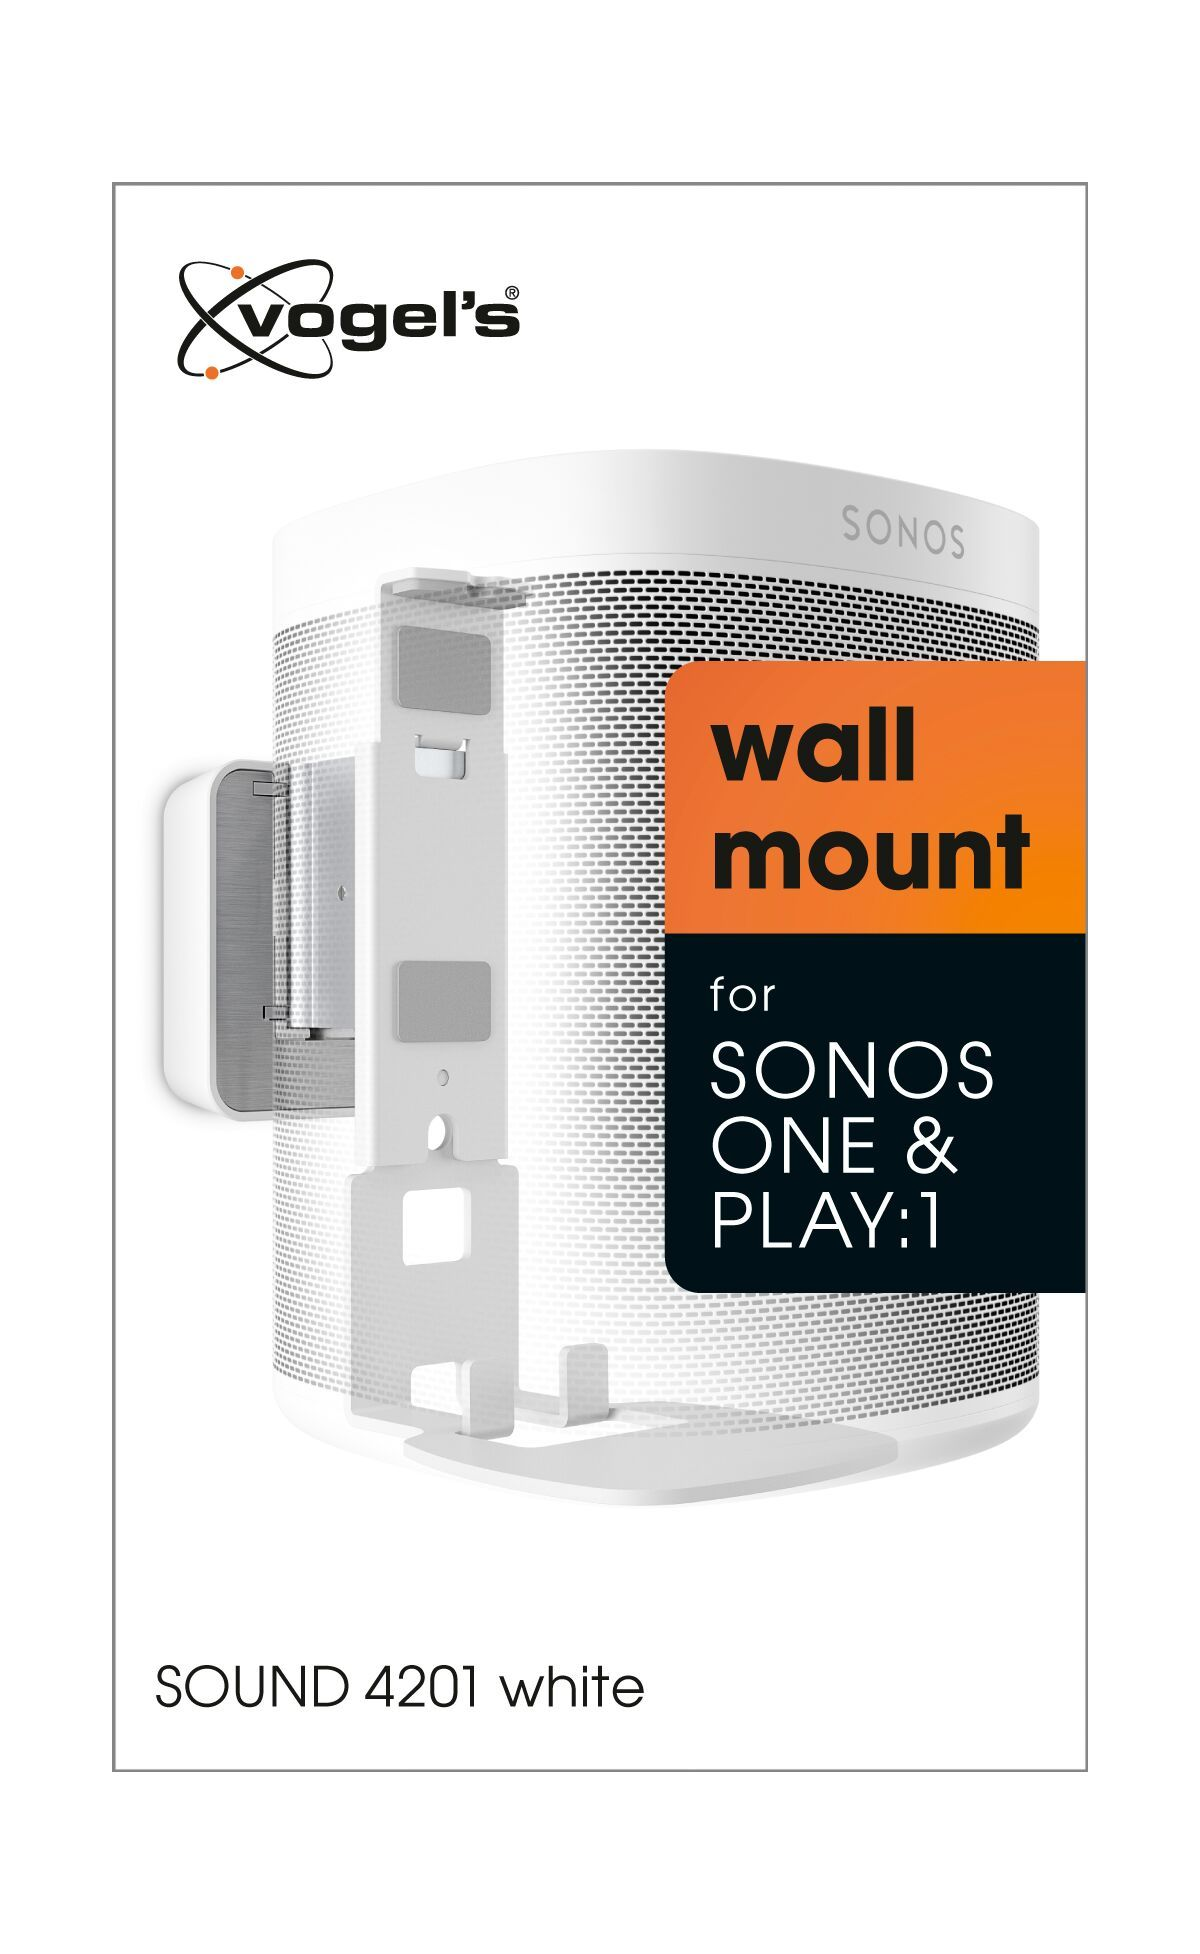 Vogel's SOUND 4201 Speaker Wall Mount for Sonos One (SL) & Play:1 (white) - Packaging front